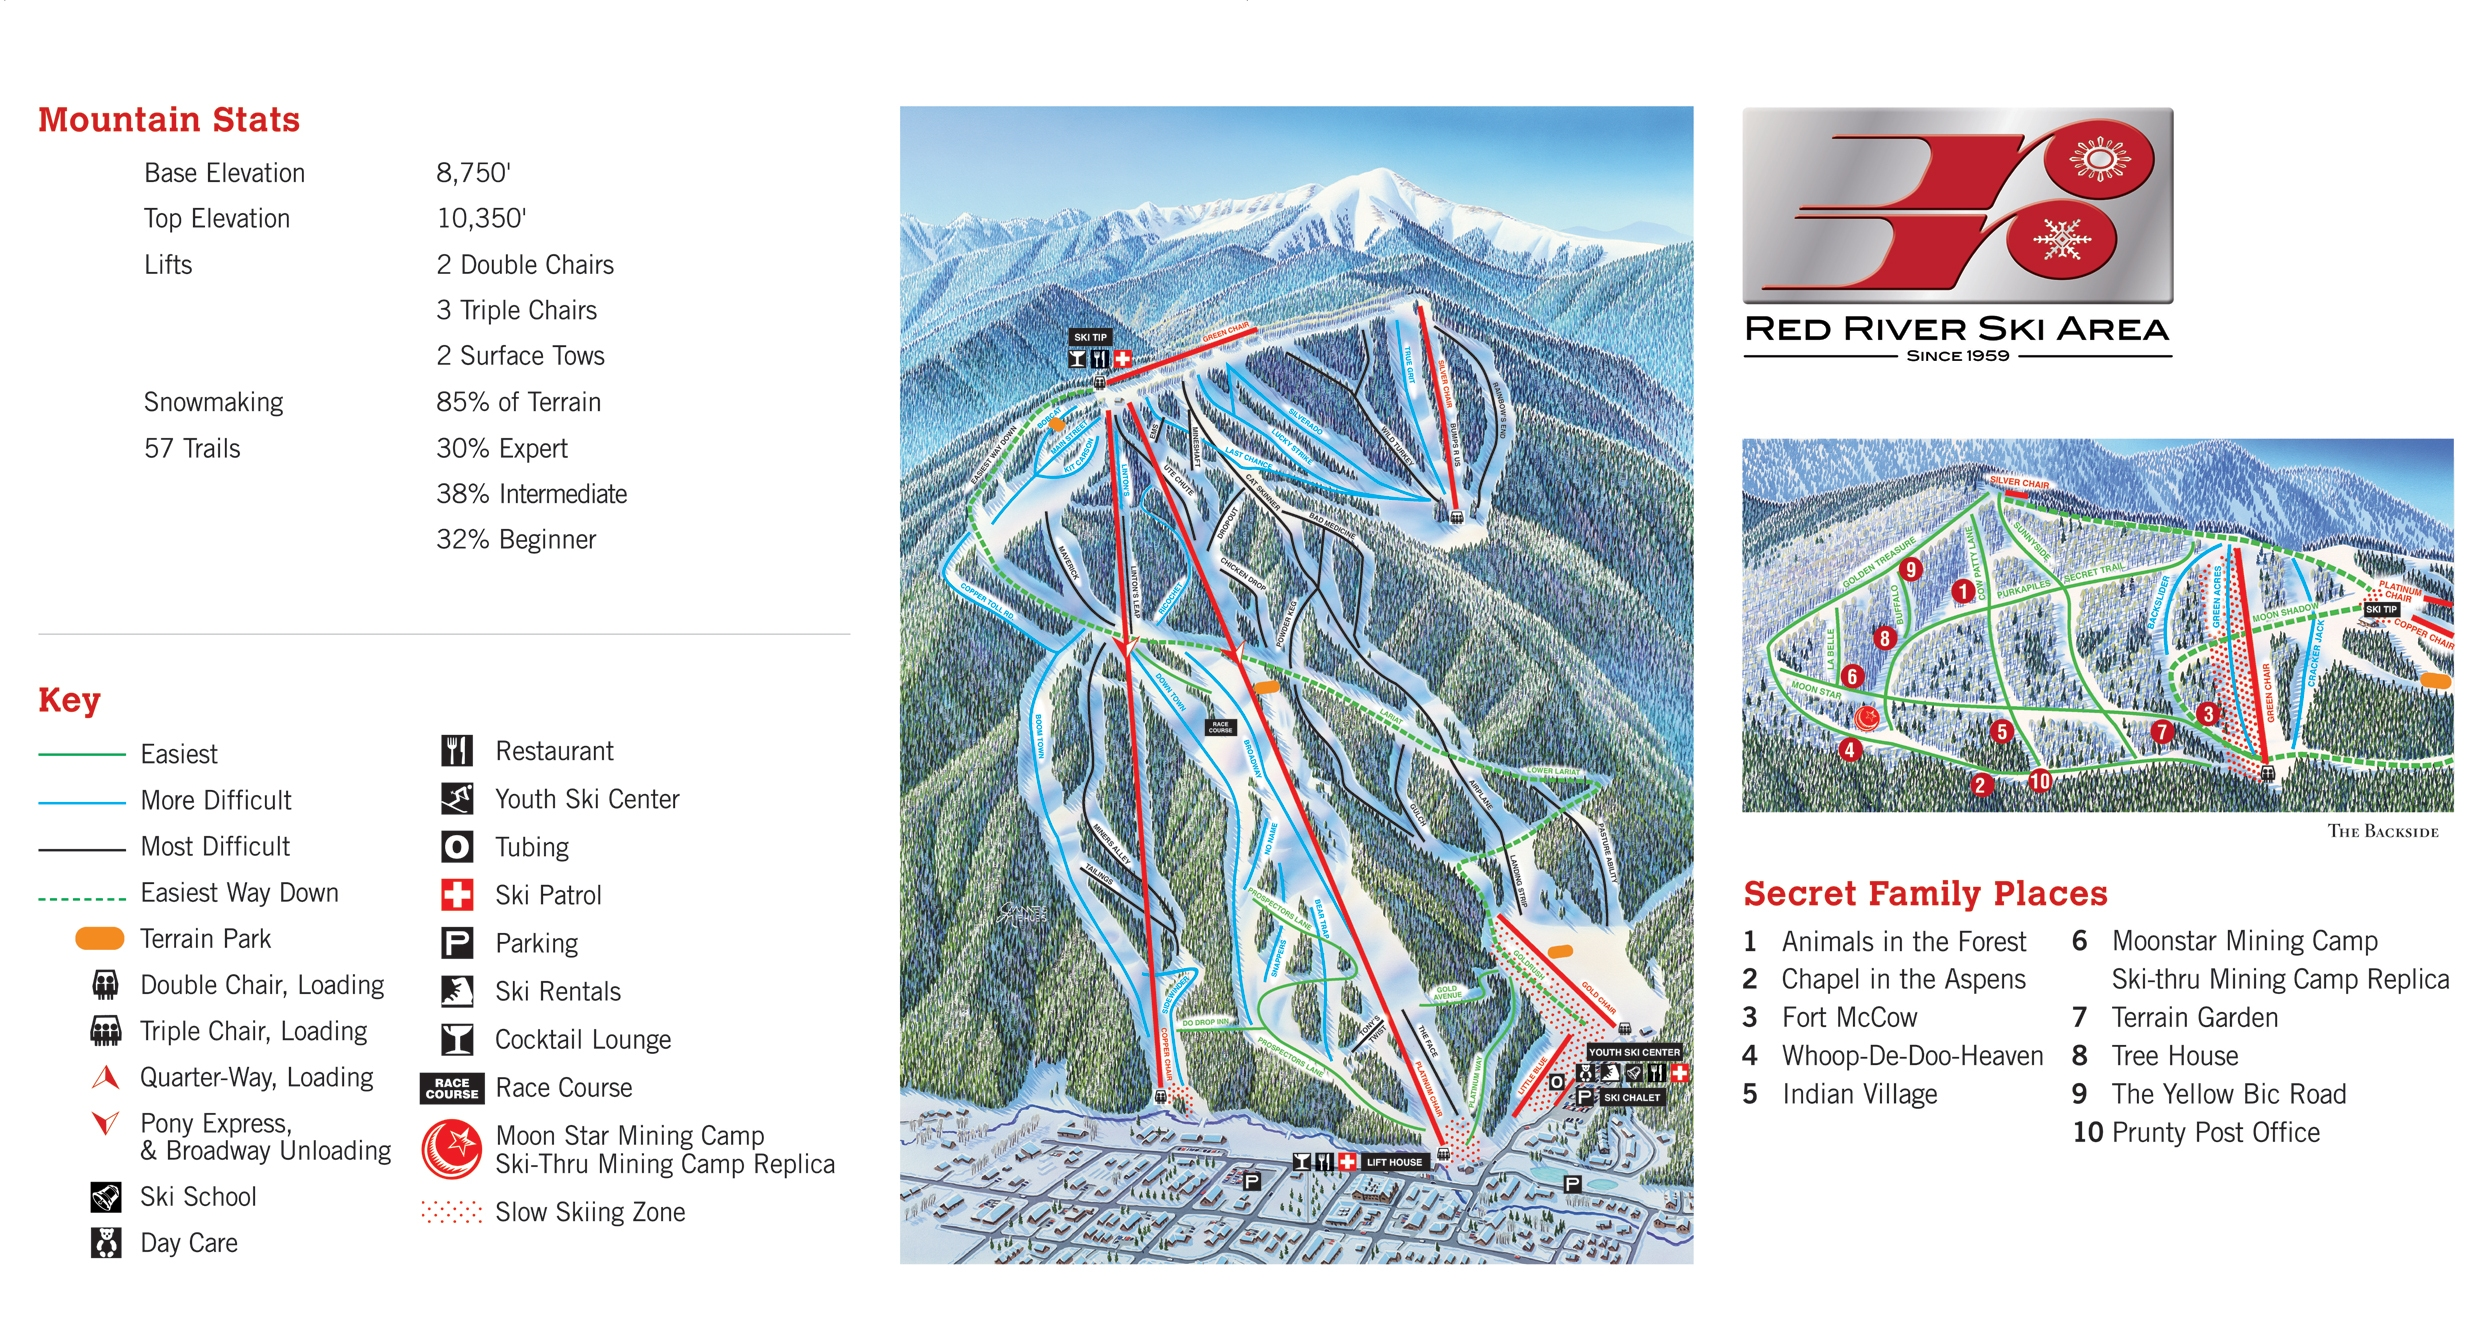 red river gorge trail map with 333 on Big Sky Resort Guide To Working A Winter Season further 6190845012 also Work A Season At Granby Ranch Colorado as well Challenging Hikes Red River Gorge Ky moreover Rincon.